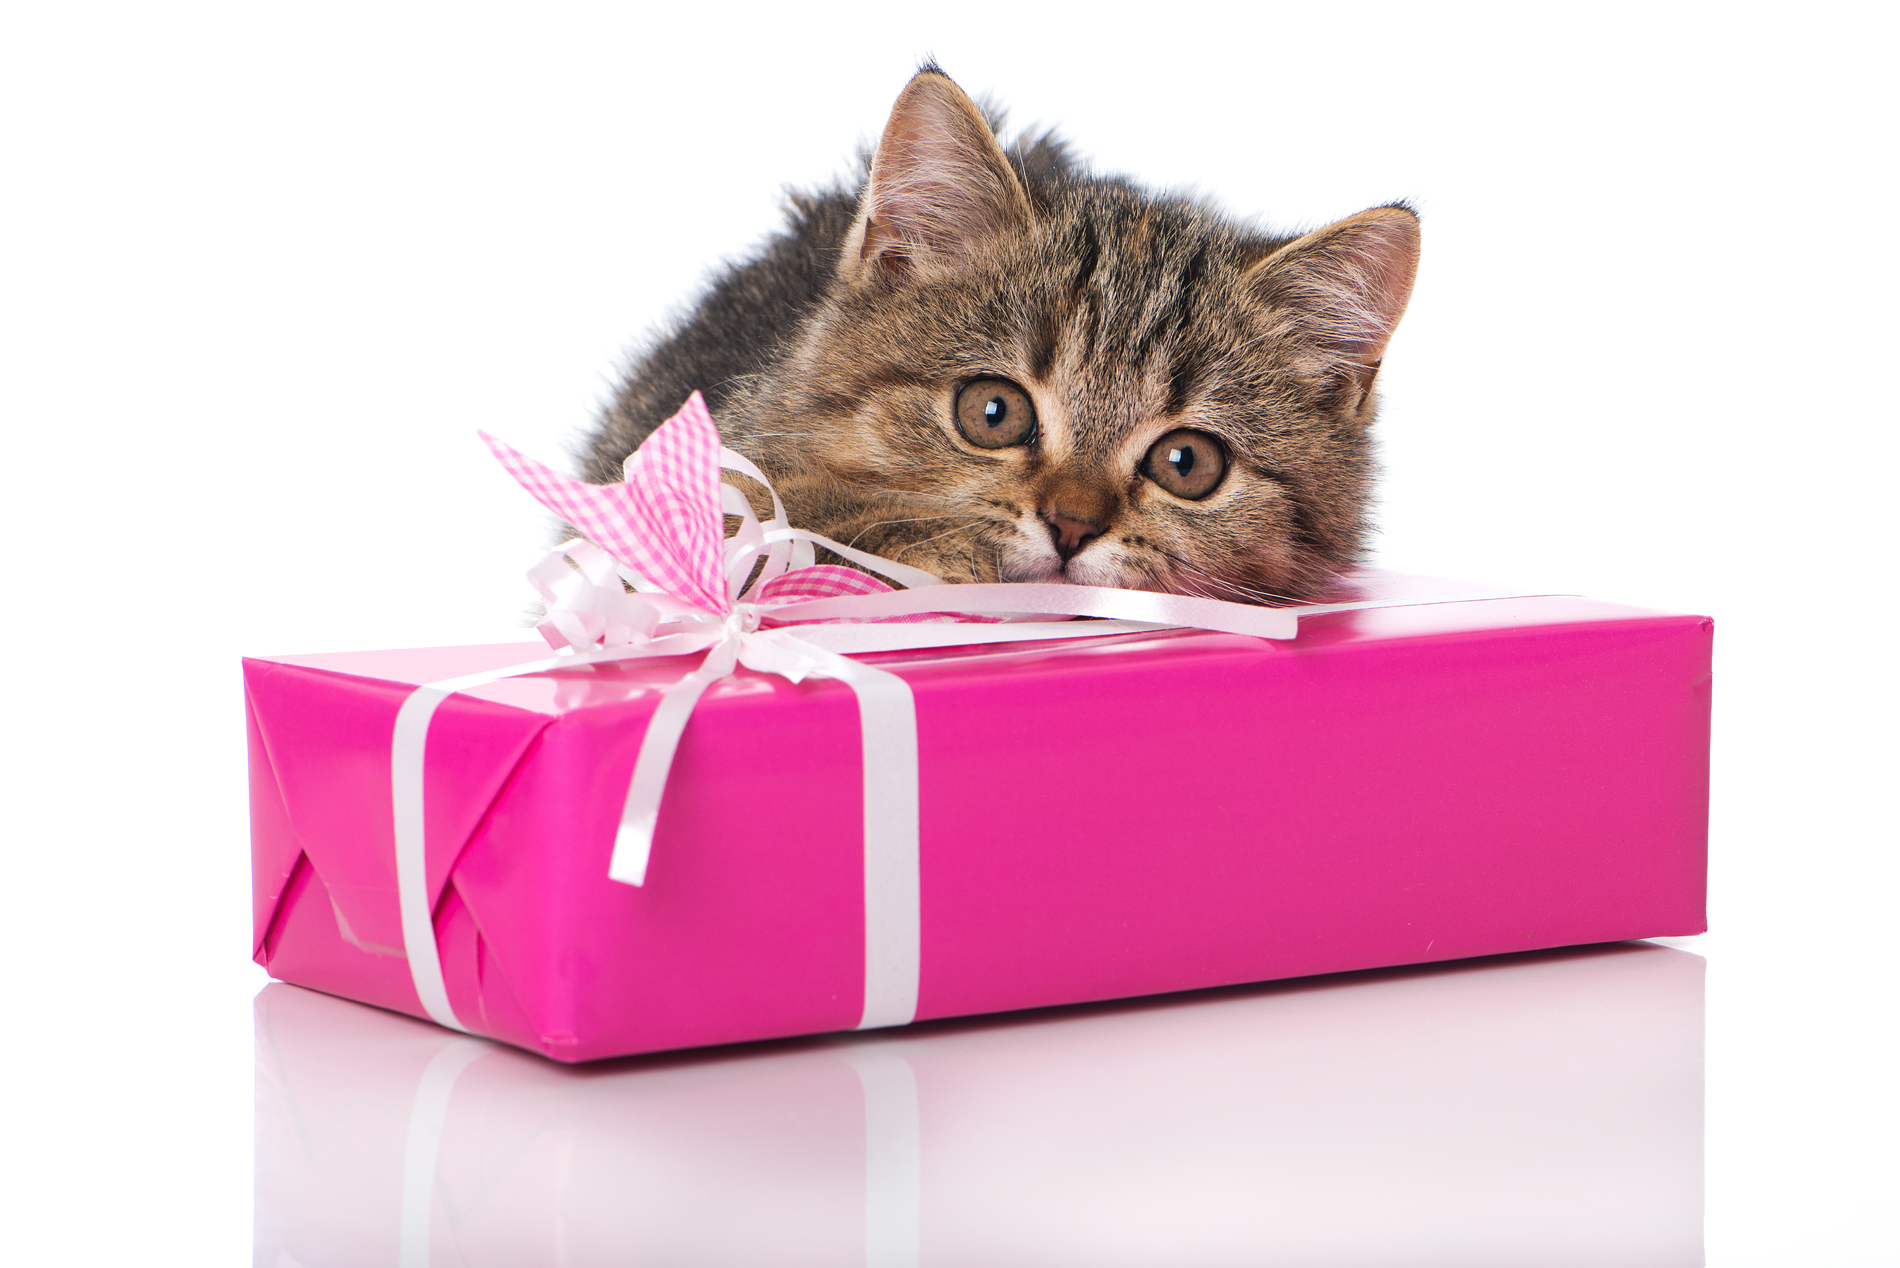 Lying on the gift box of kittens 52750